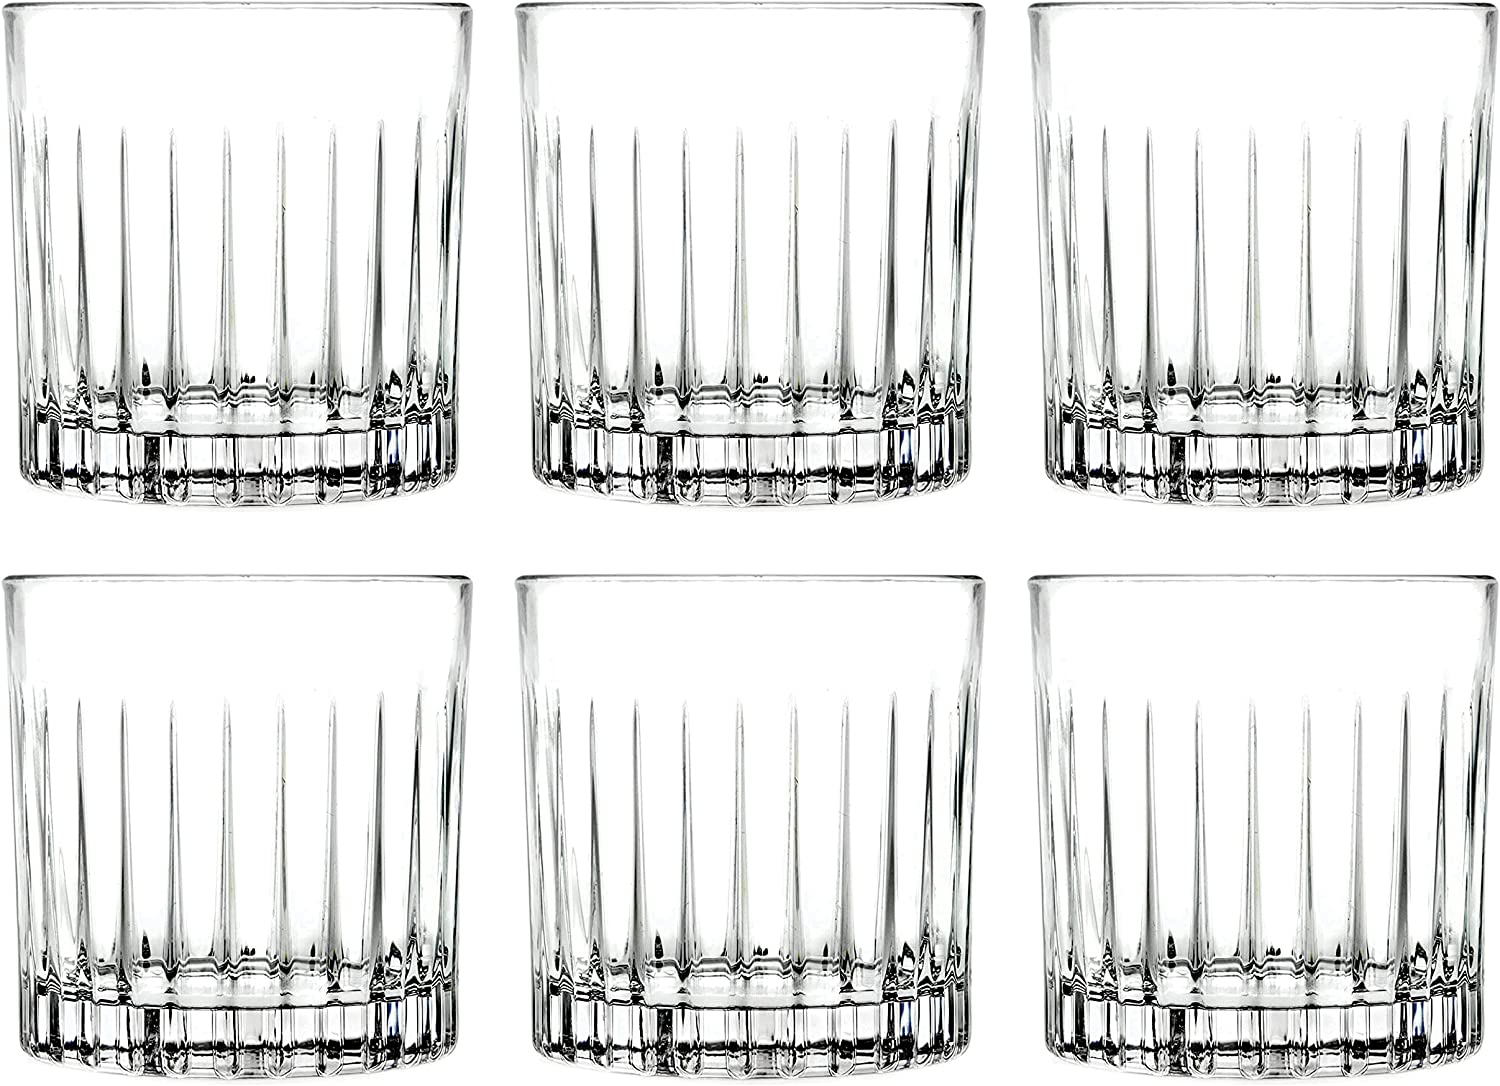 Tumbler Glass - Double Old Fashioned - Set of 6 - Glasses - Designed DOF Crystal Glass Tumblers - For Whiskey - Bourbon - Water - Beverage - Drinking Glasses - 12 oz. - Made in Europe By Barski